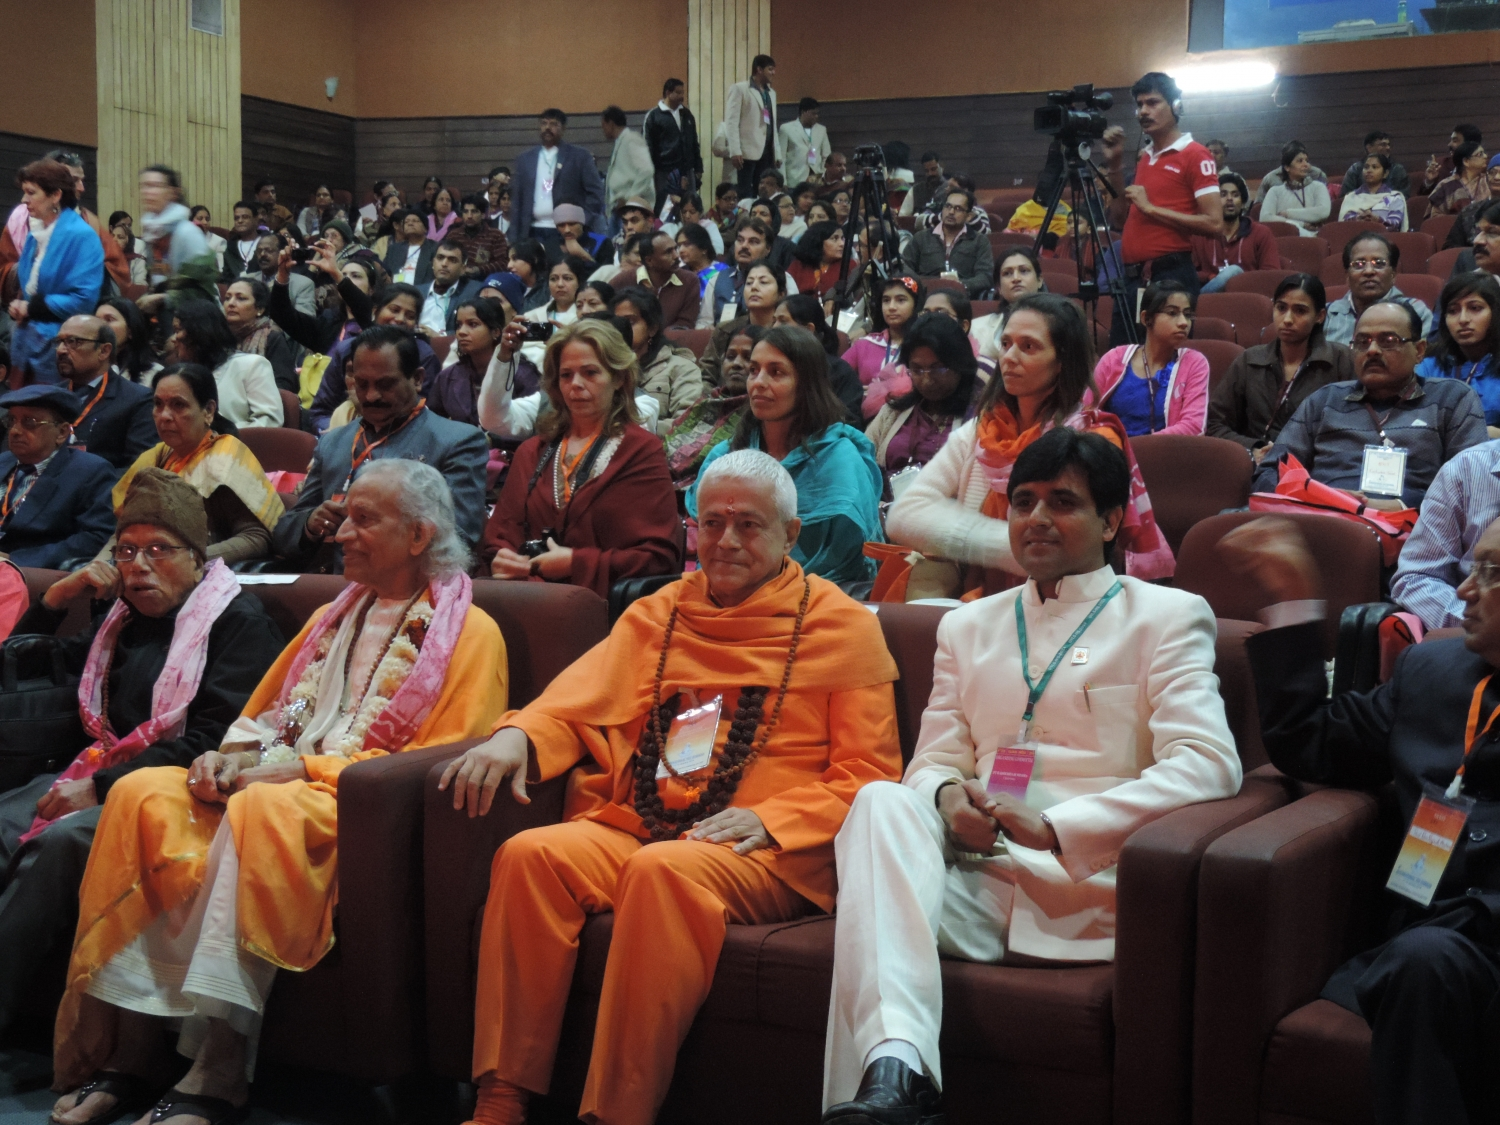 International Yoga Seminar - IYS 2014 INDIA - Ujjein, Índia - 2014, Janeiro - Entrega do Prémio Matsyendra Nathā